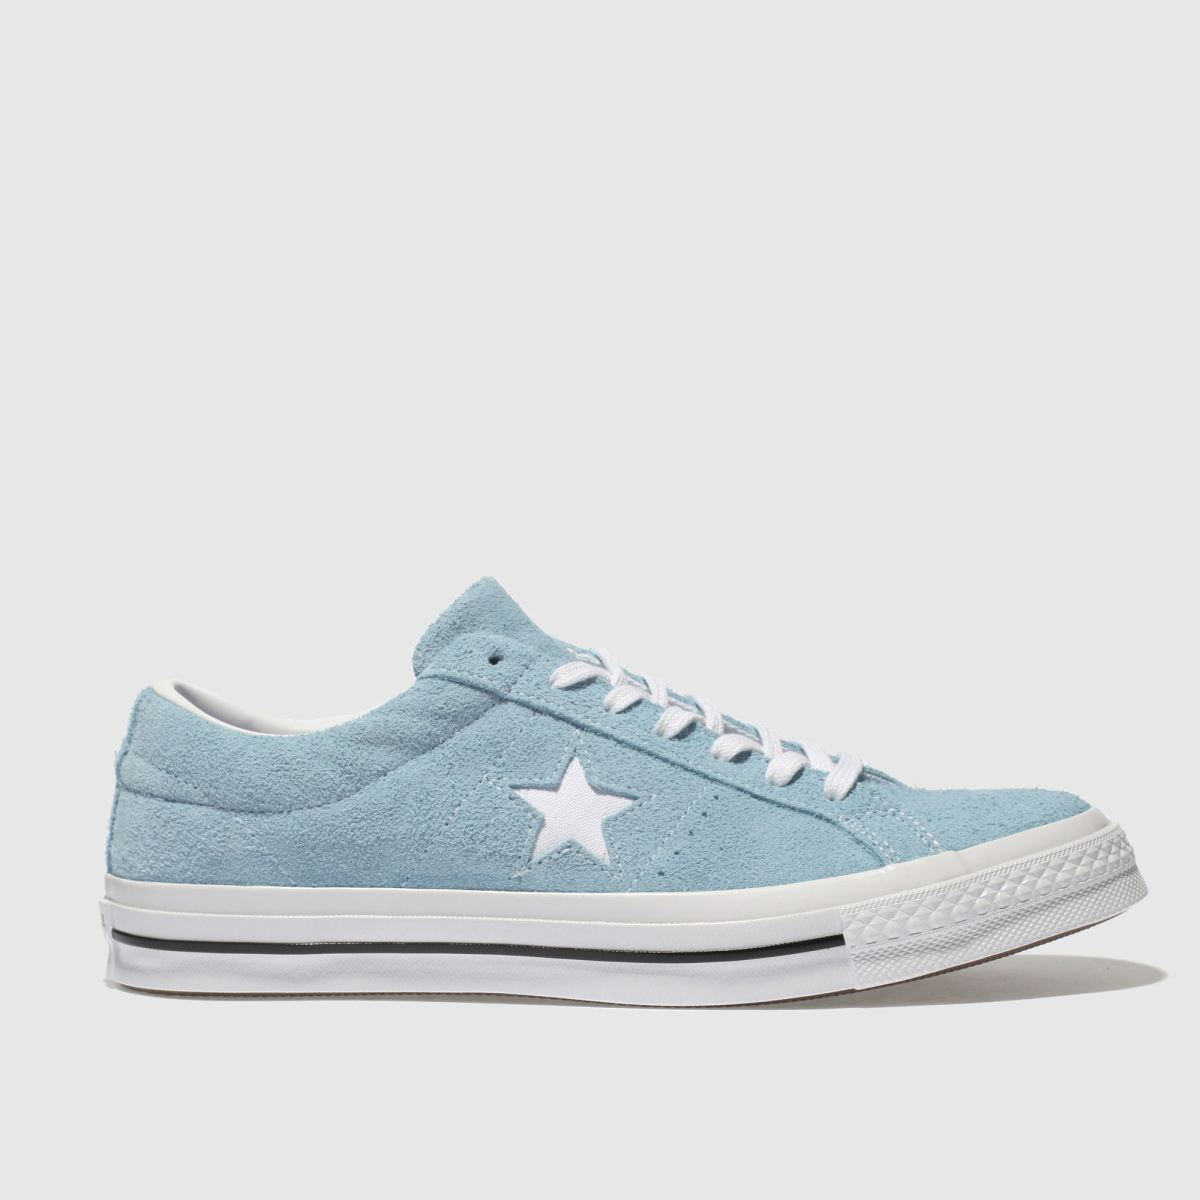 Converse Blue One Star Ox Vintage Suede Trainers